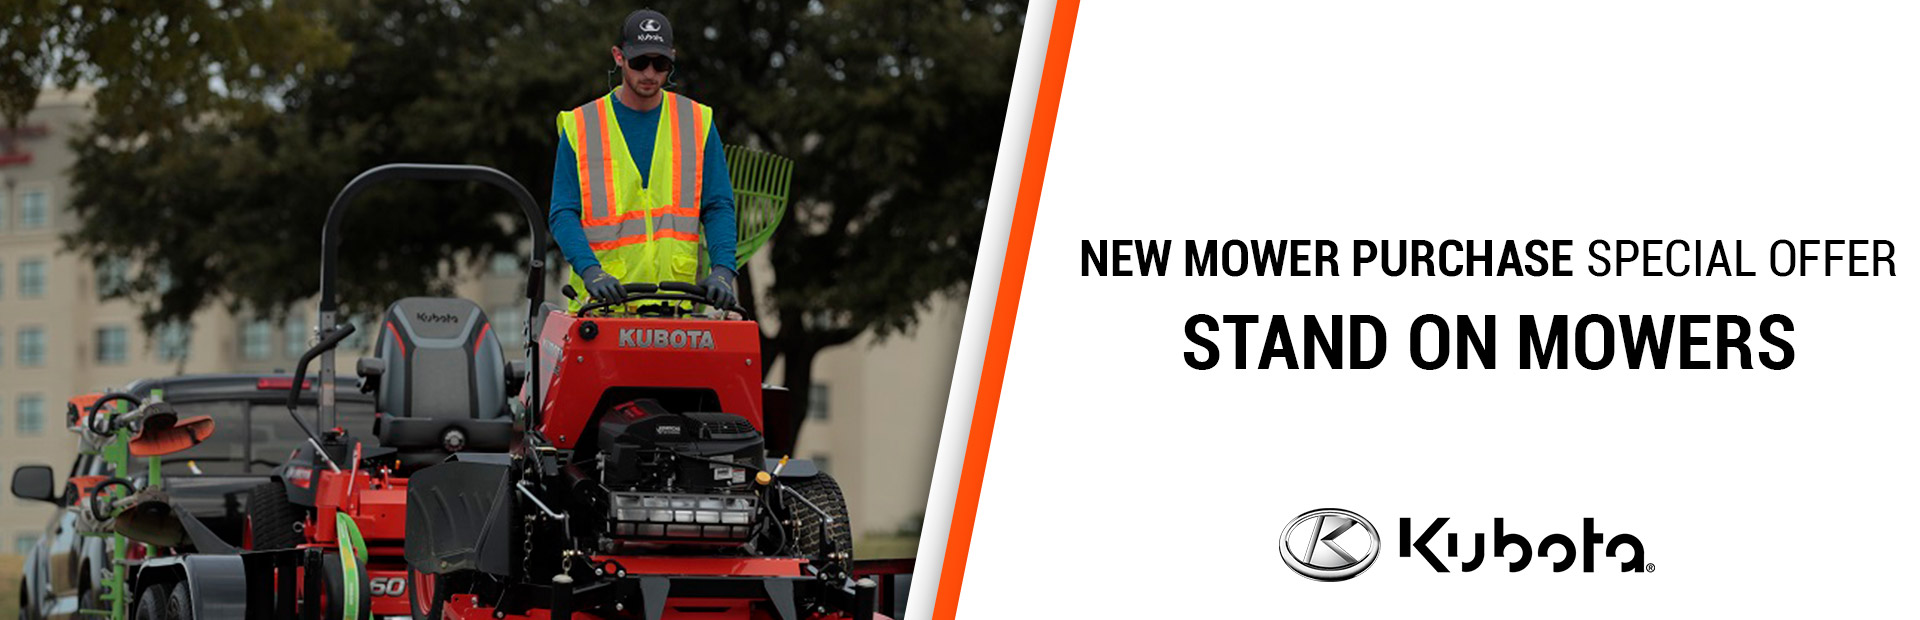 Kubota: NEW MOWER PURCHASE SPECIAL OFFERS-STAND ON MOWERS